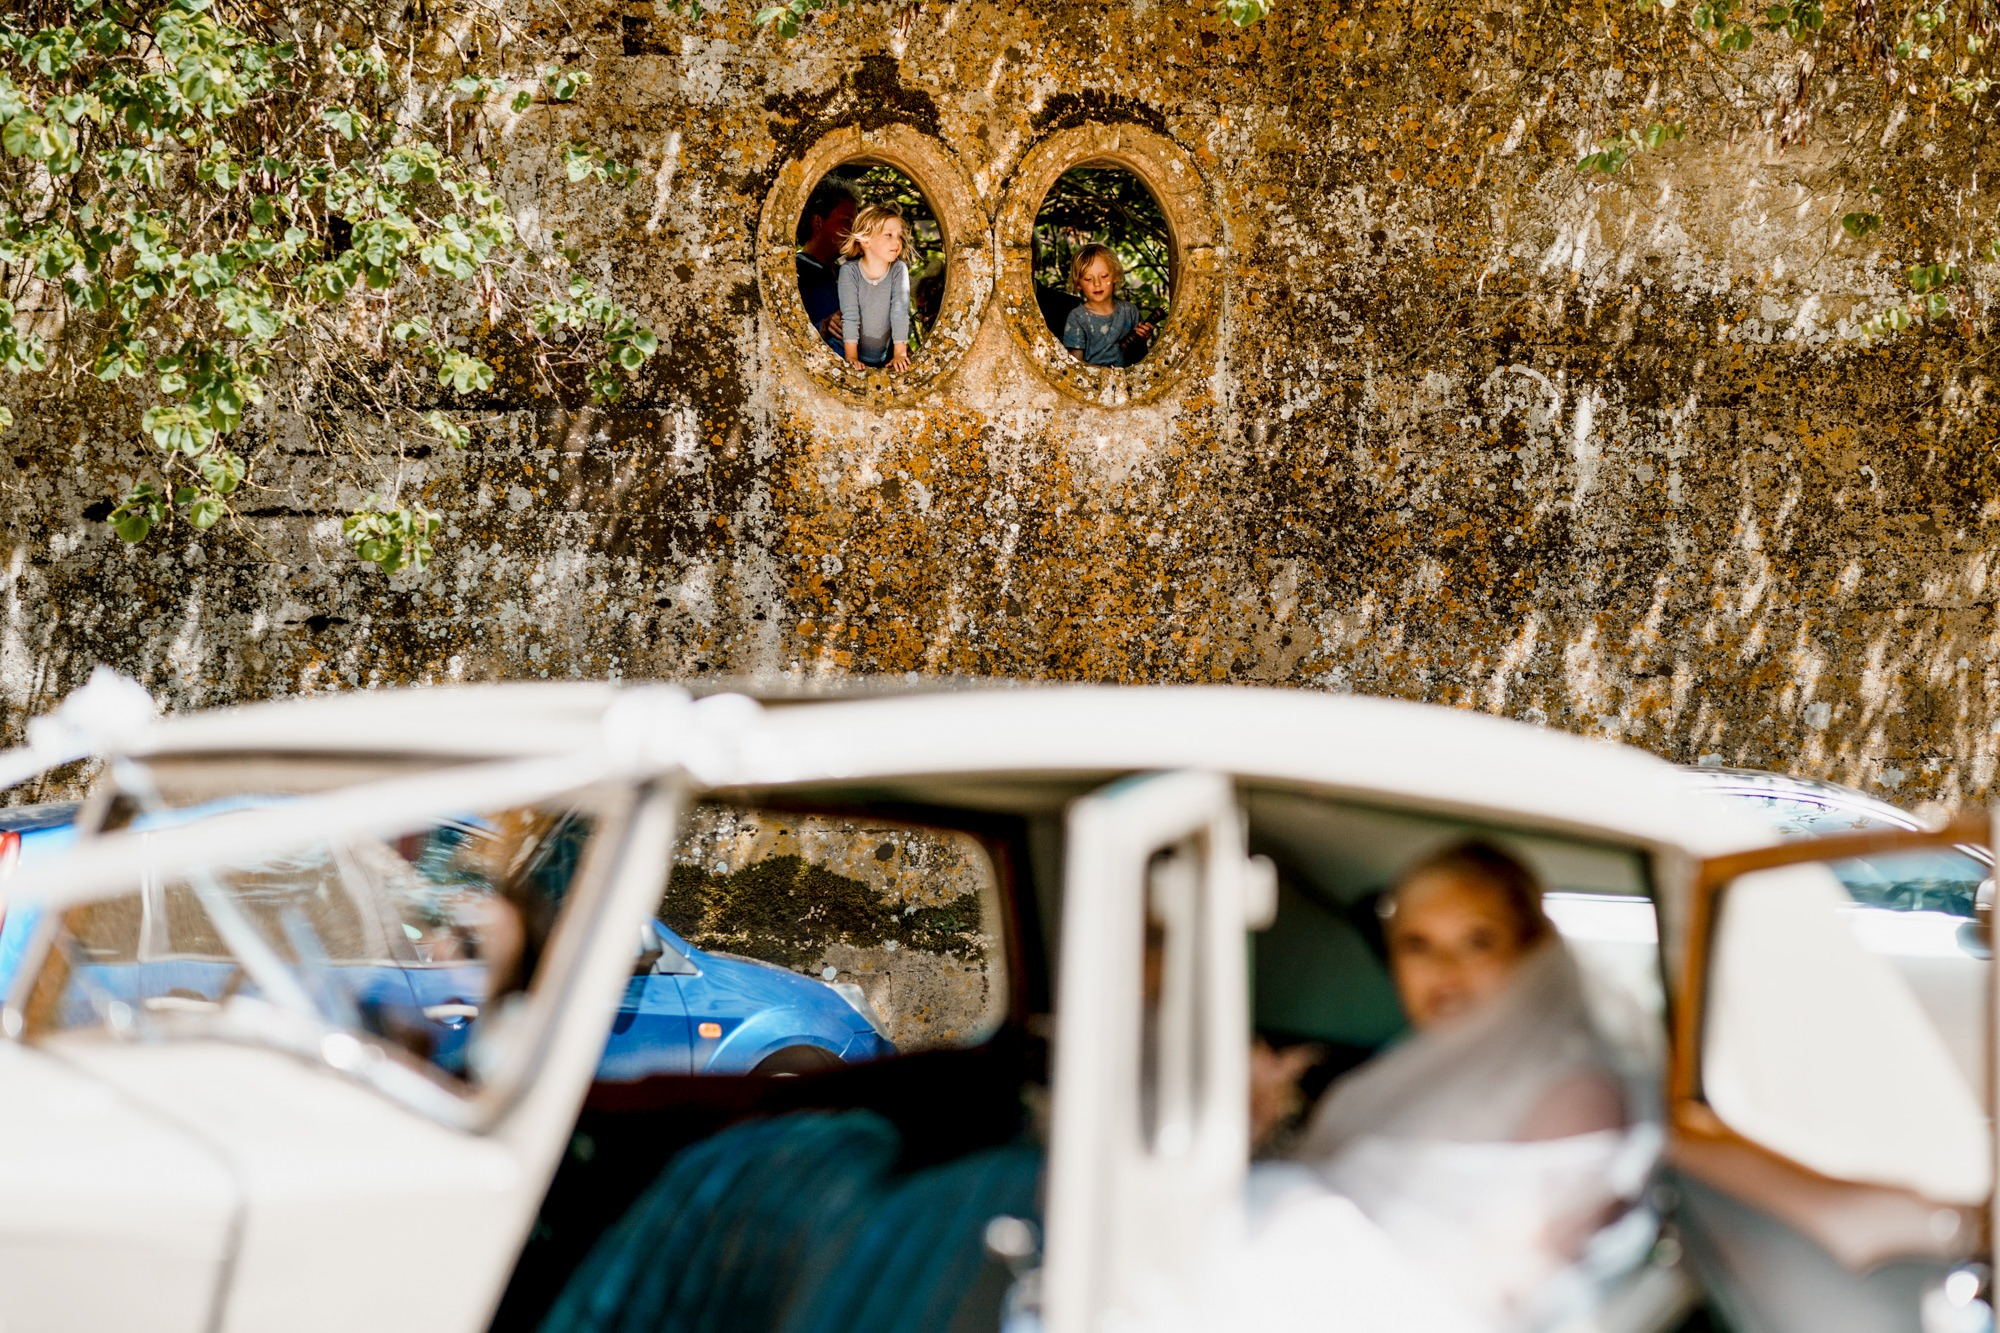 children in windows watching bridal car